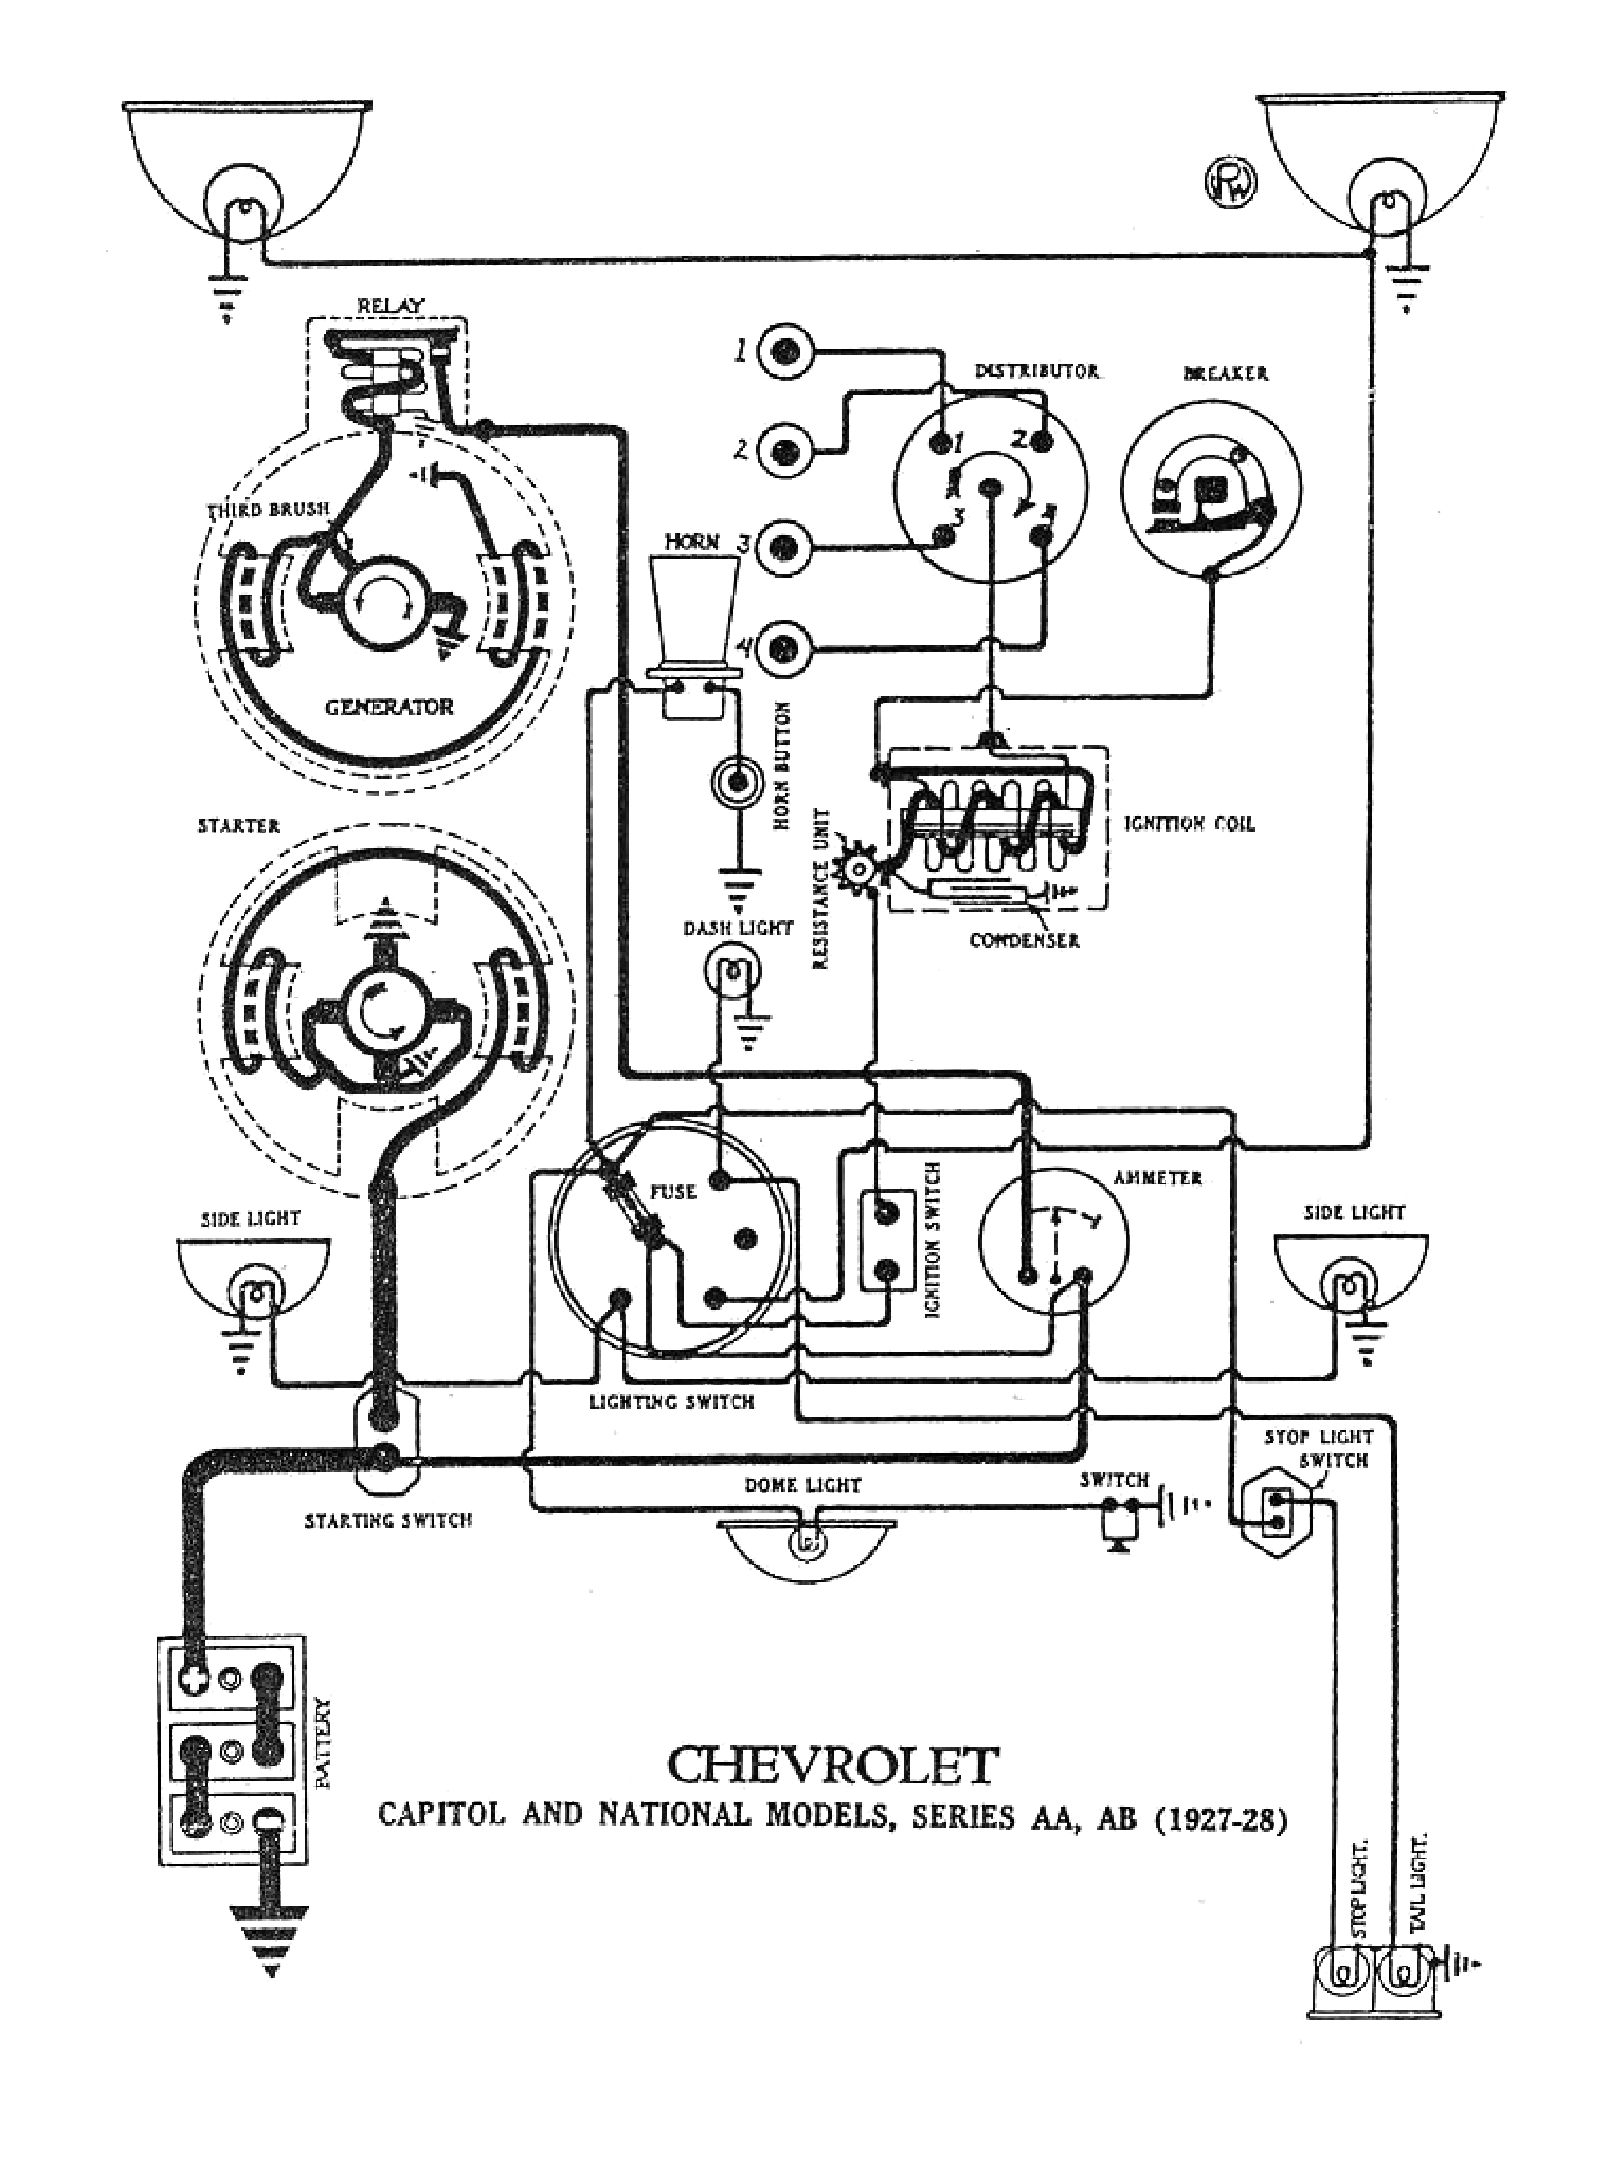 1930 ford model a wiring diagram somurich 1930 model a ford wiring diagram  html autos post